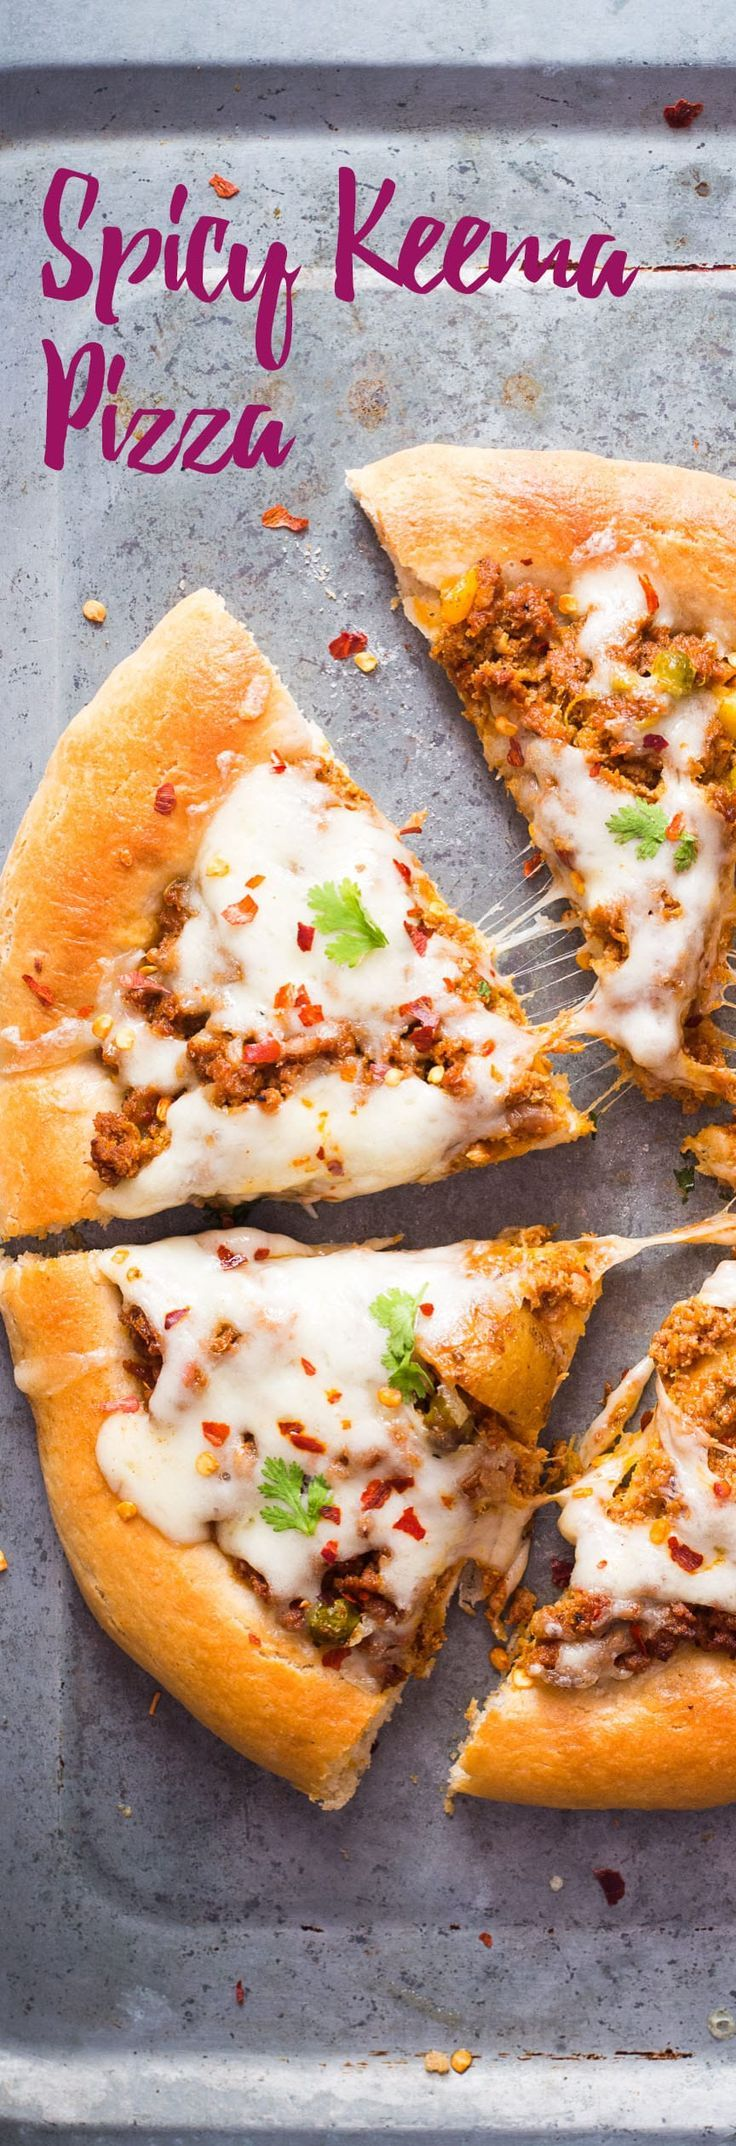 Whole wheat keema pizza is the best way to use up leftover keema! Spicy, hearty and topped with lots of cheese, it's the only thing you need for your next party! Food Photography and Styling by Richa Gupta.